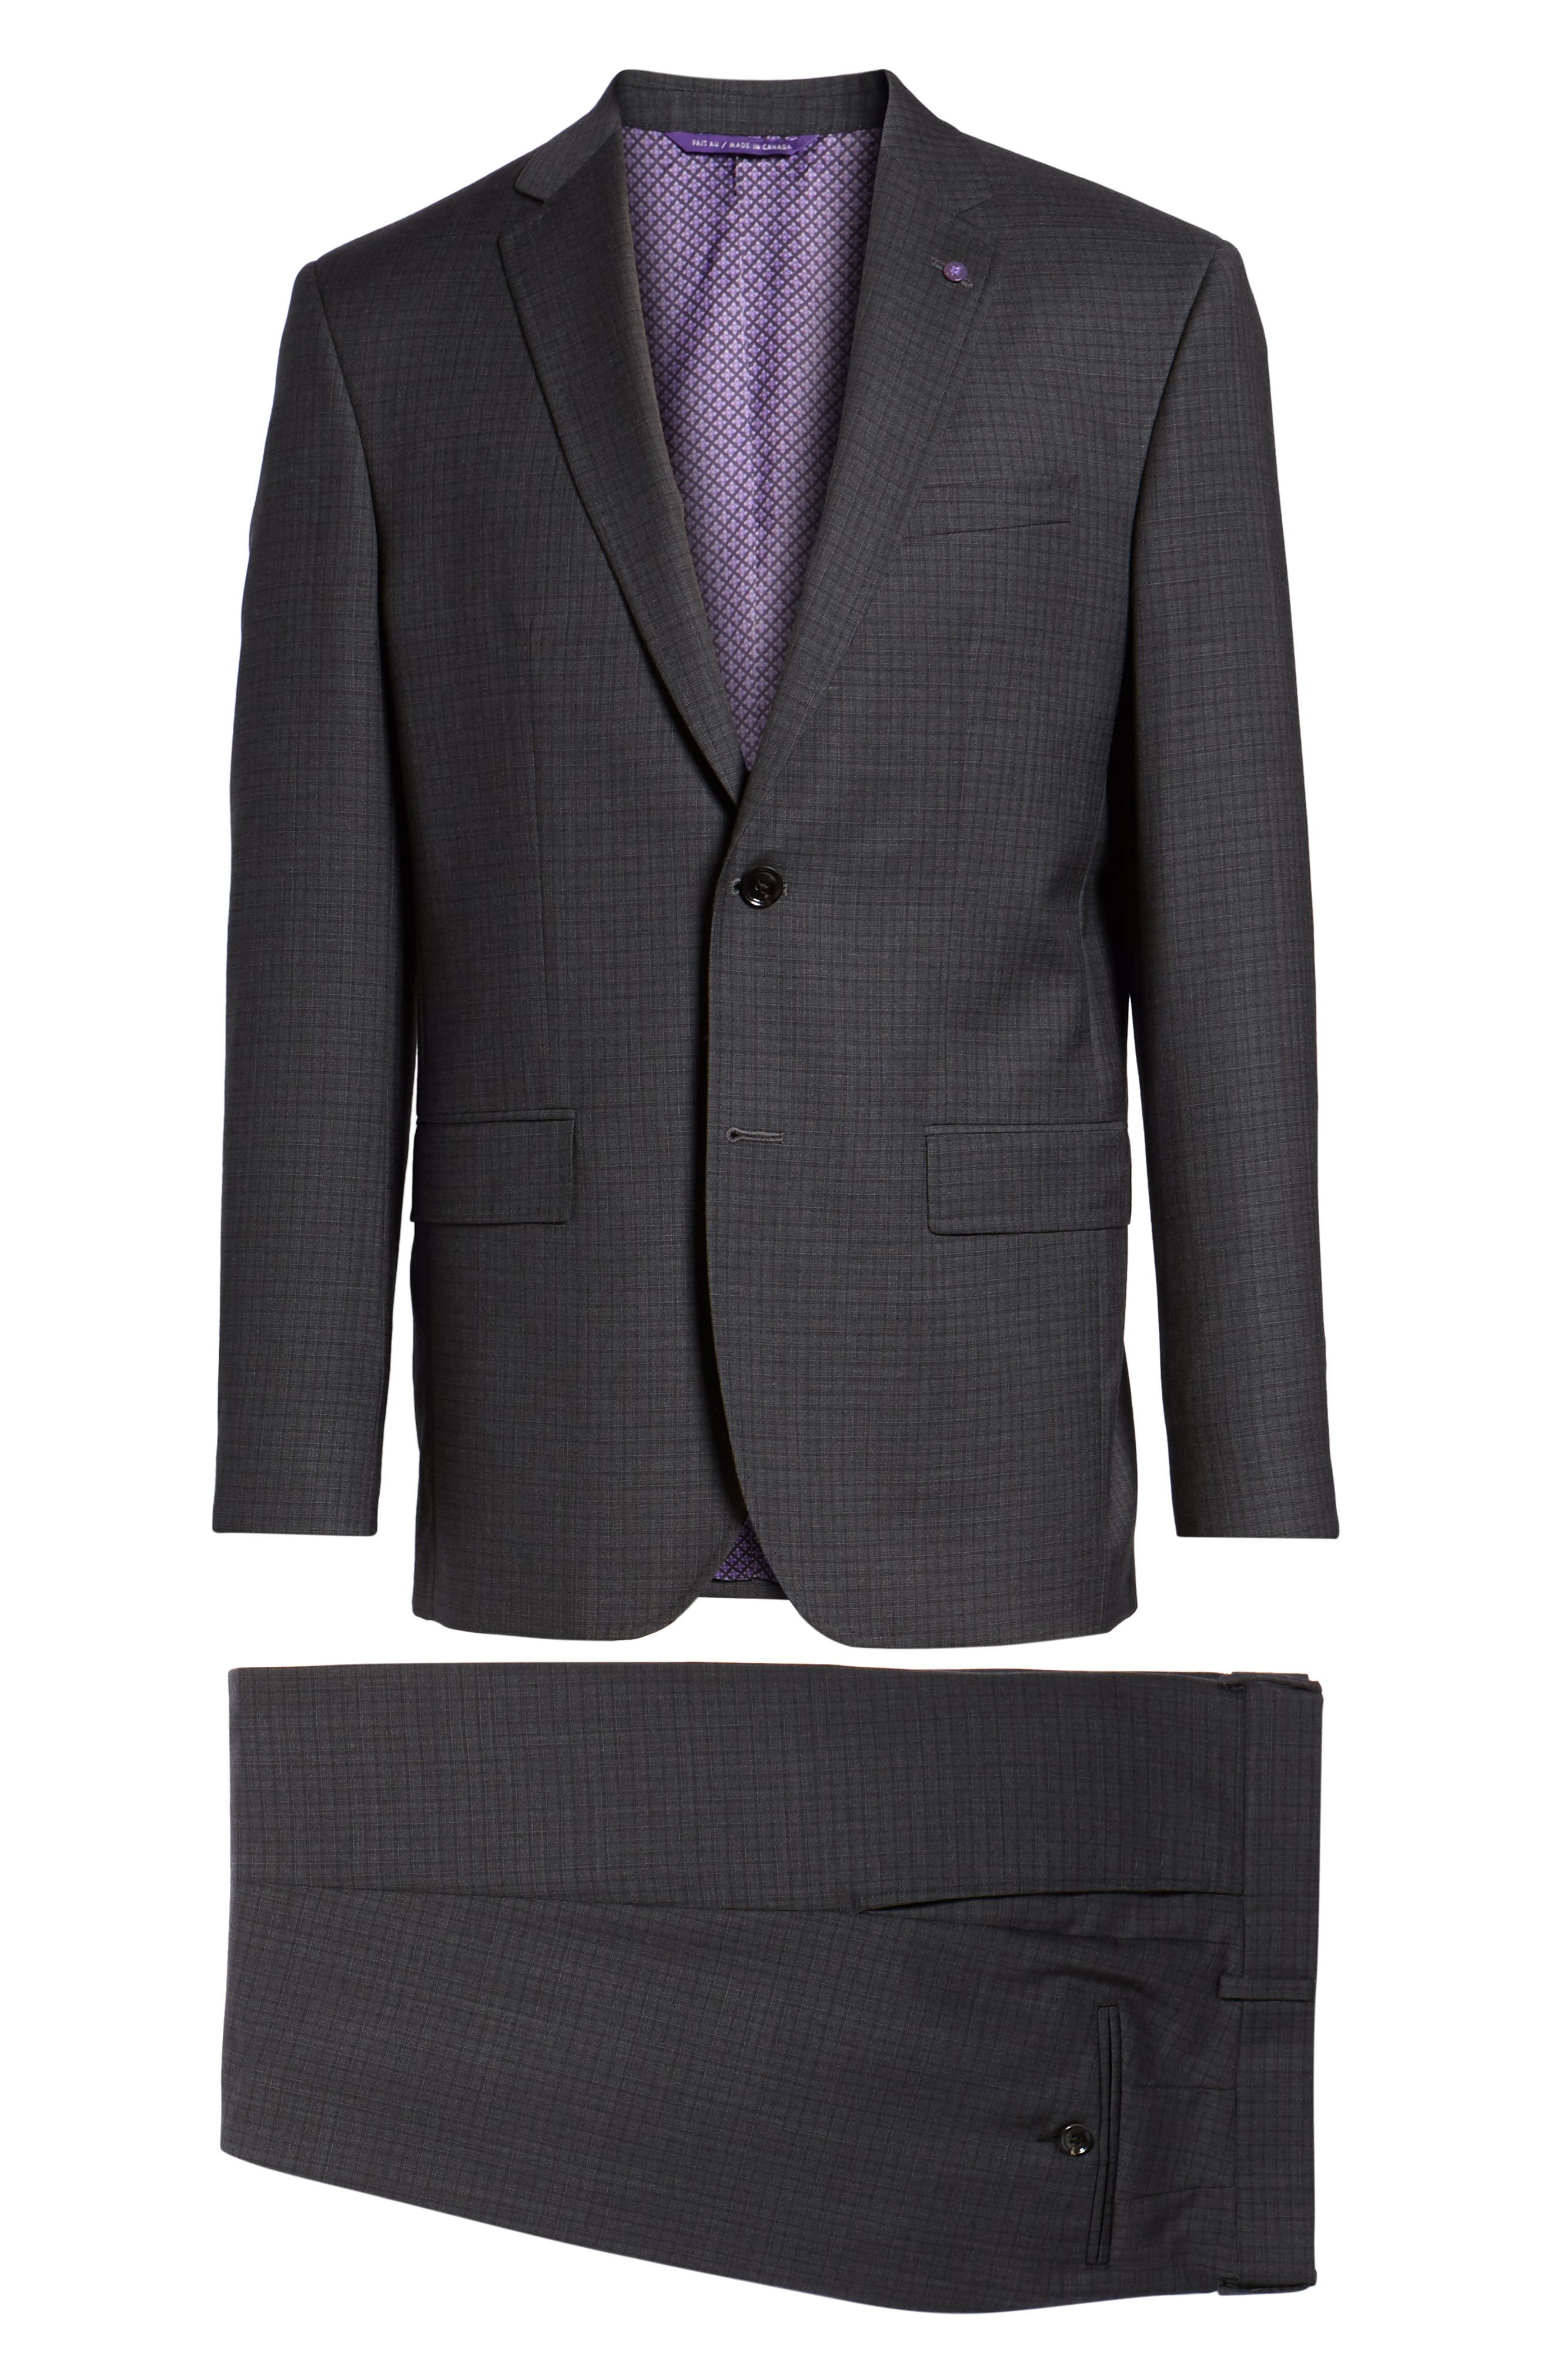 Jay Trim Fit Check Wool Suit,                             Alternate thumbnail 8, color,                             Charcoal